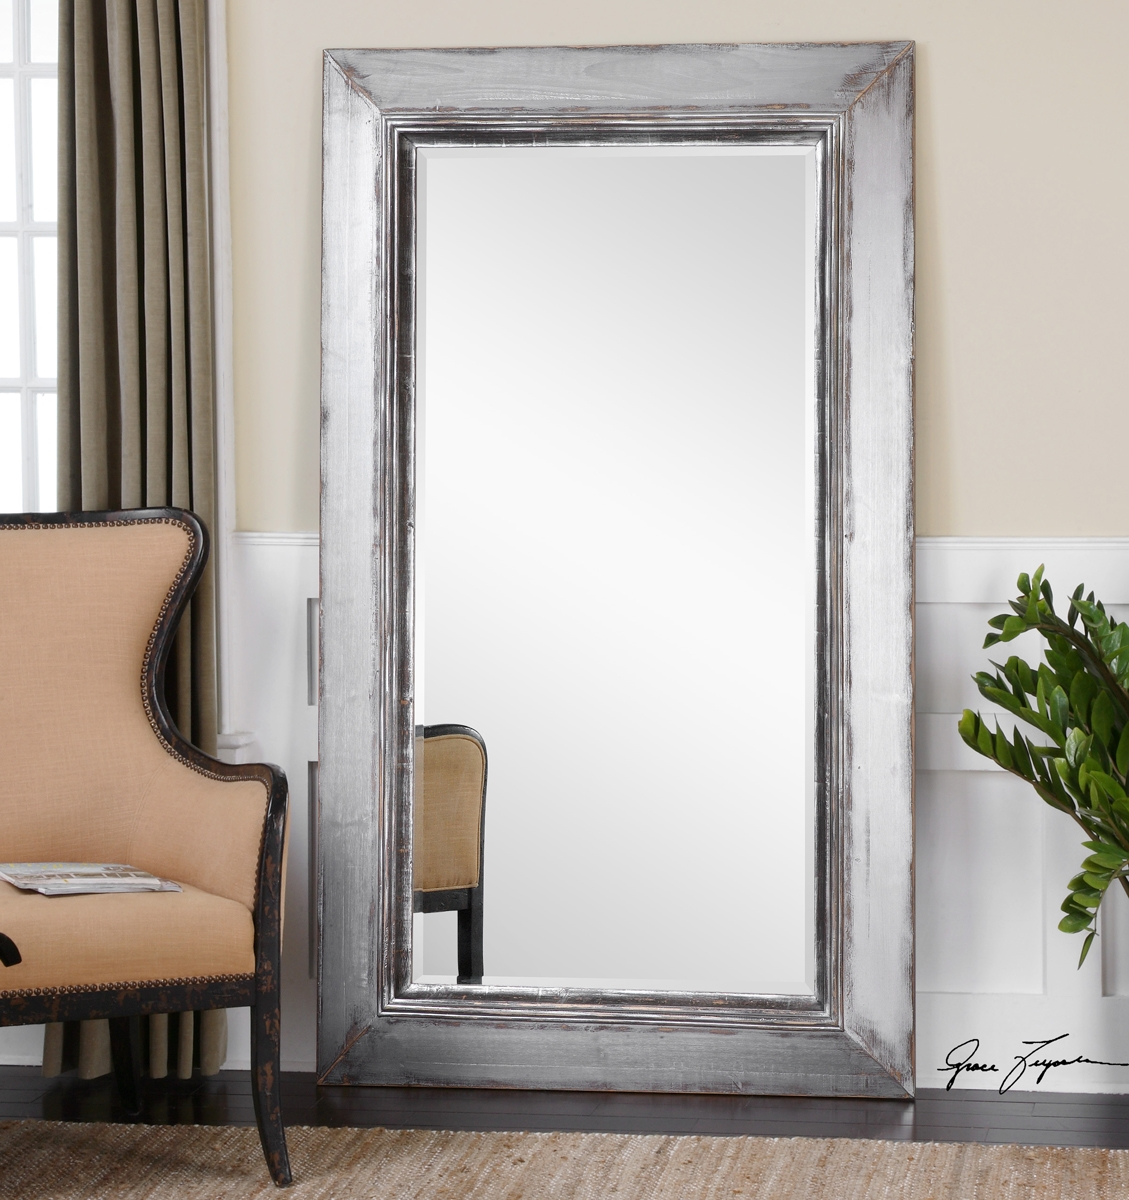 Standing Mirrors Lighting Fixtures Lights And Home Lighting Within Silver Floor Standing Mirror (Image 15 of 15)